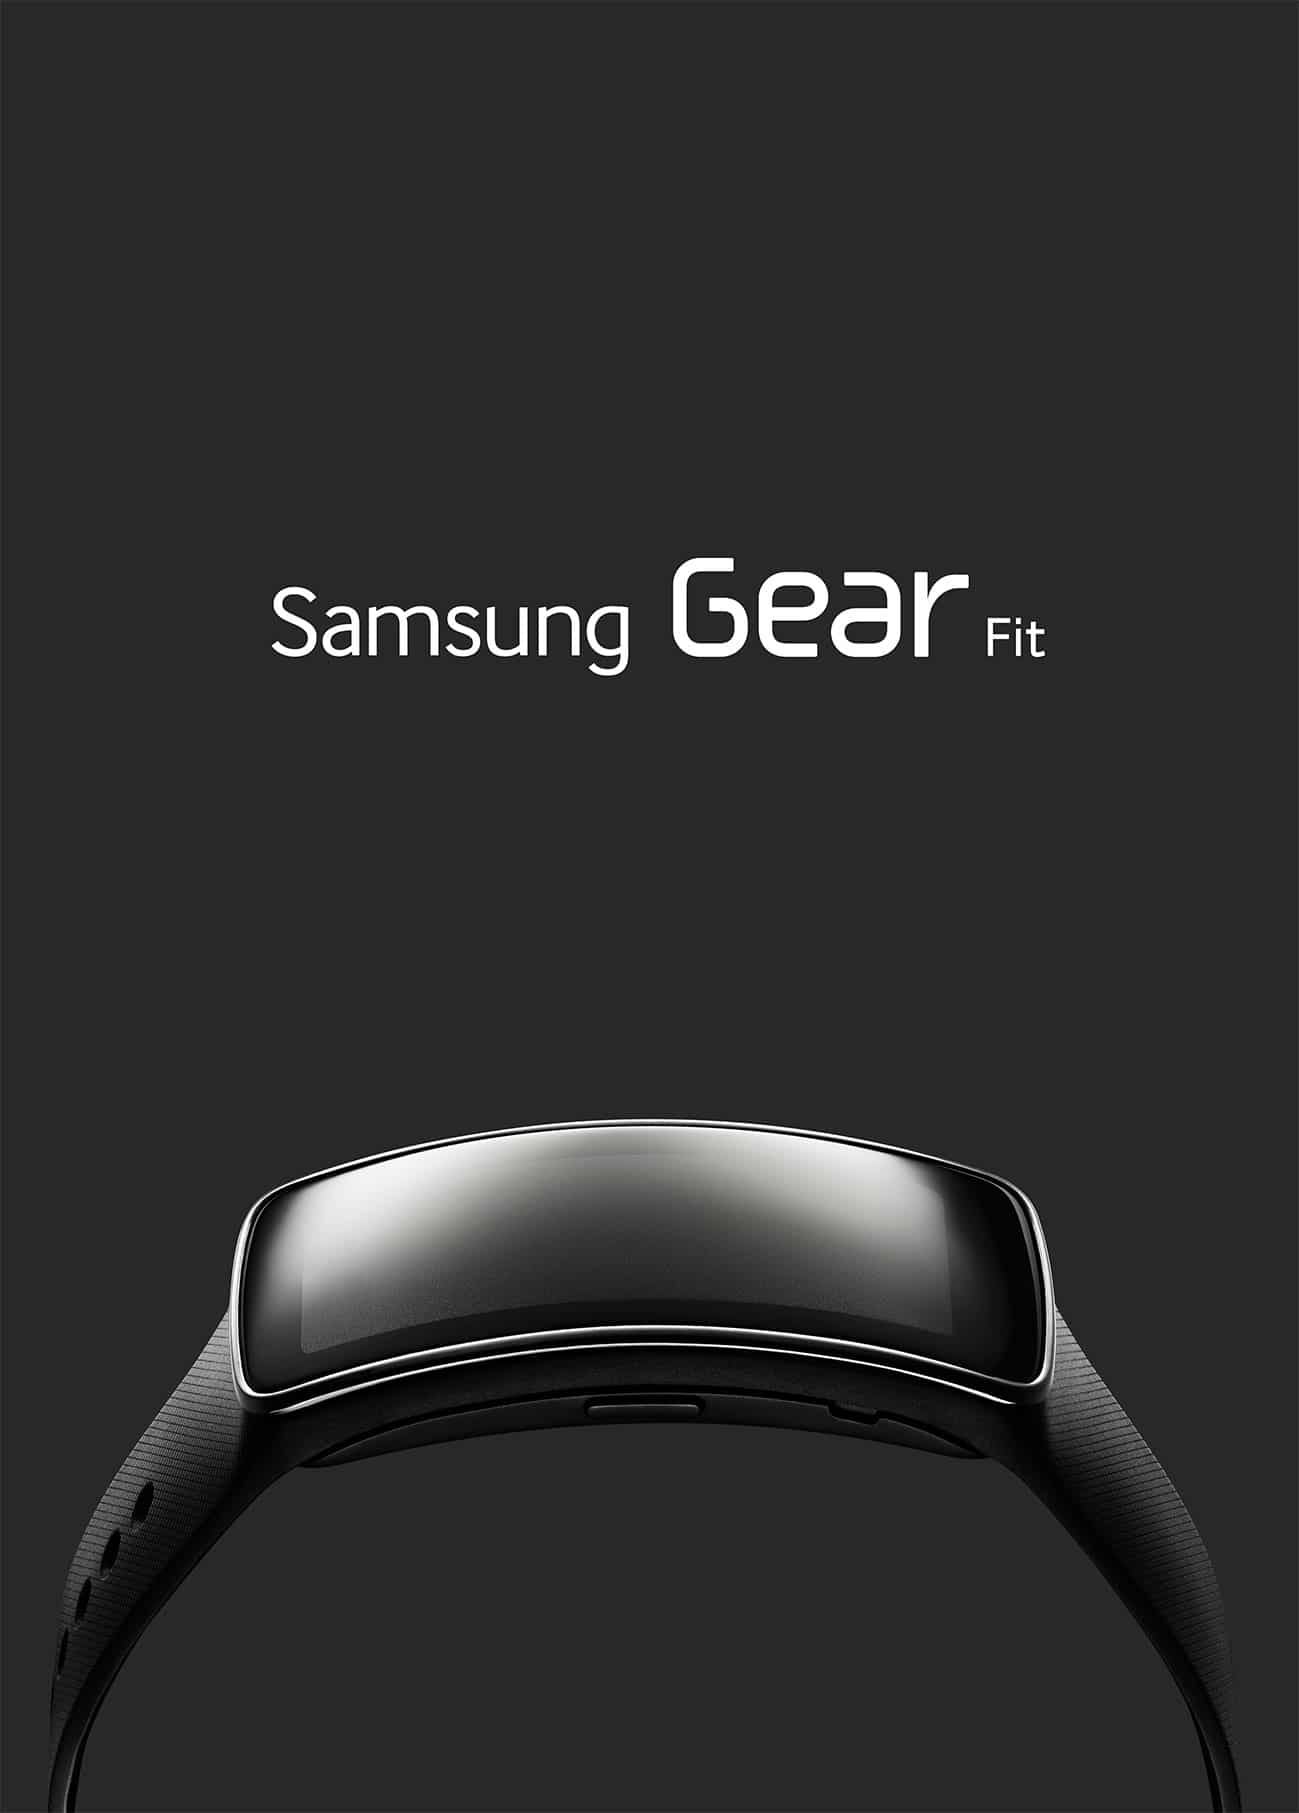 samsung stellt samsung gear fit uhr vor android digital. Black Bedroom Furniture Sets. Home Design Ideas